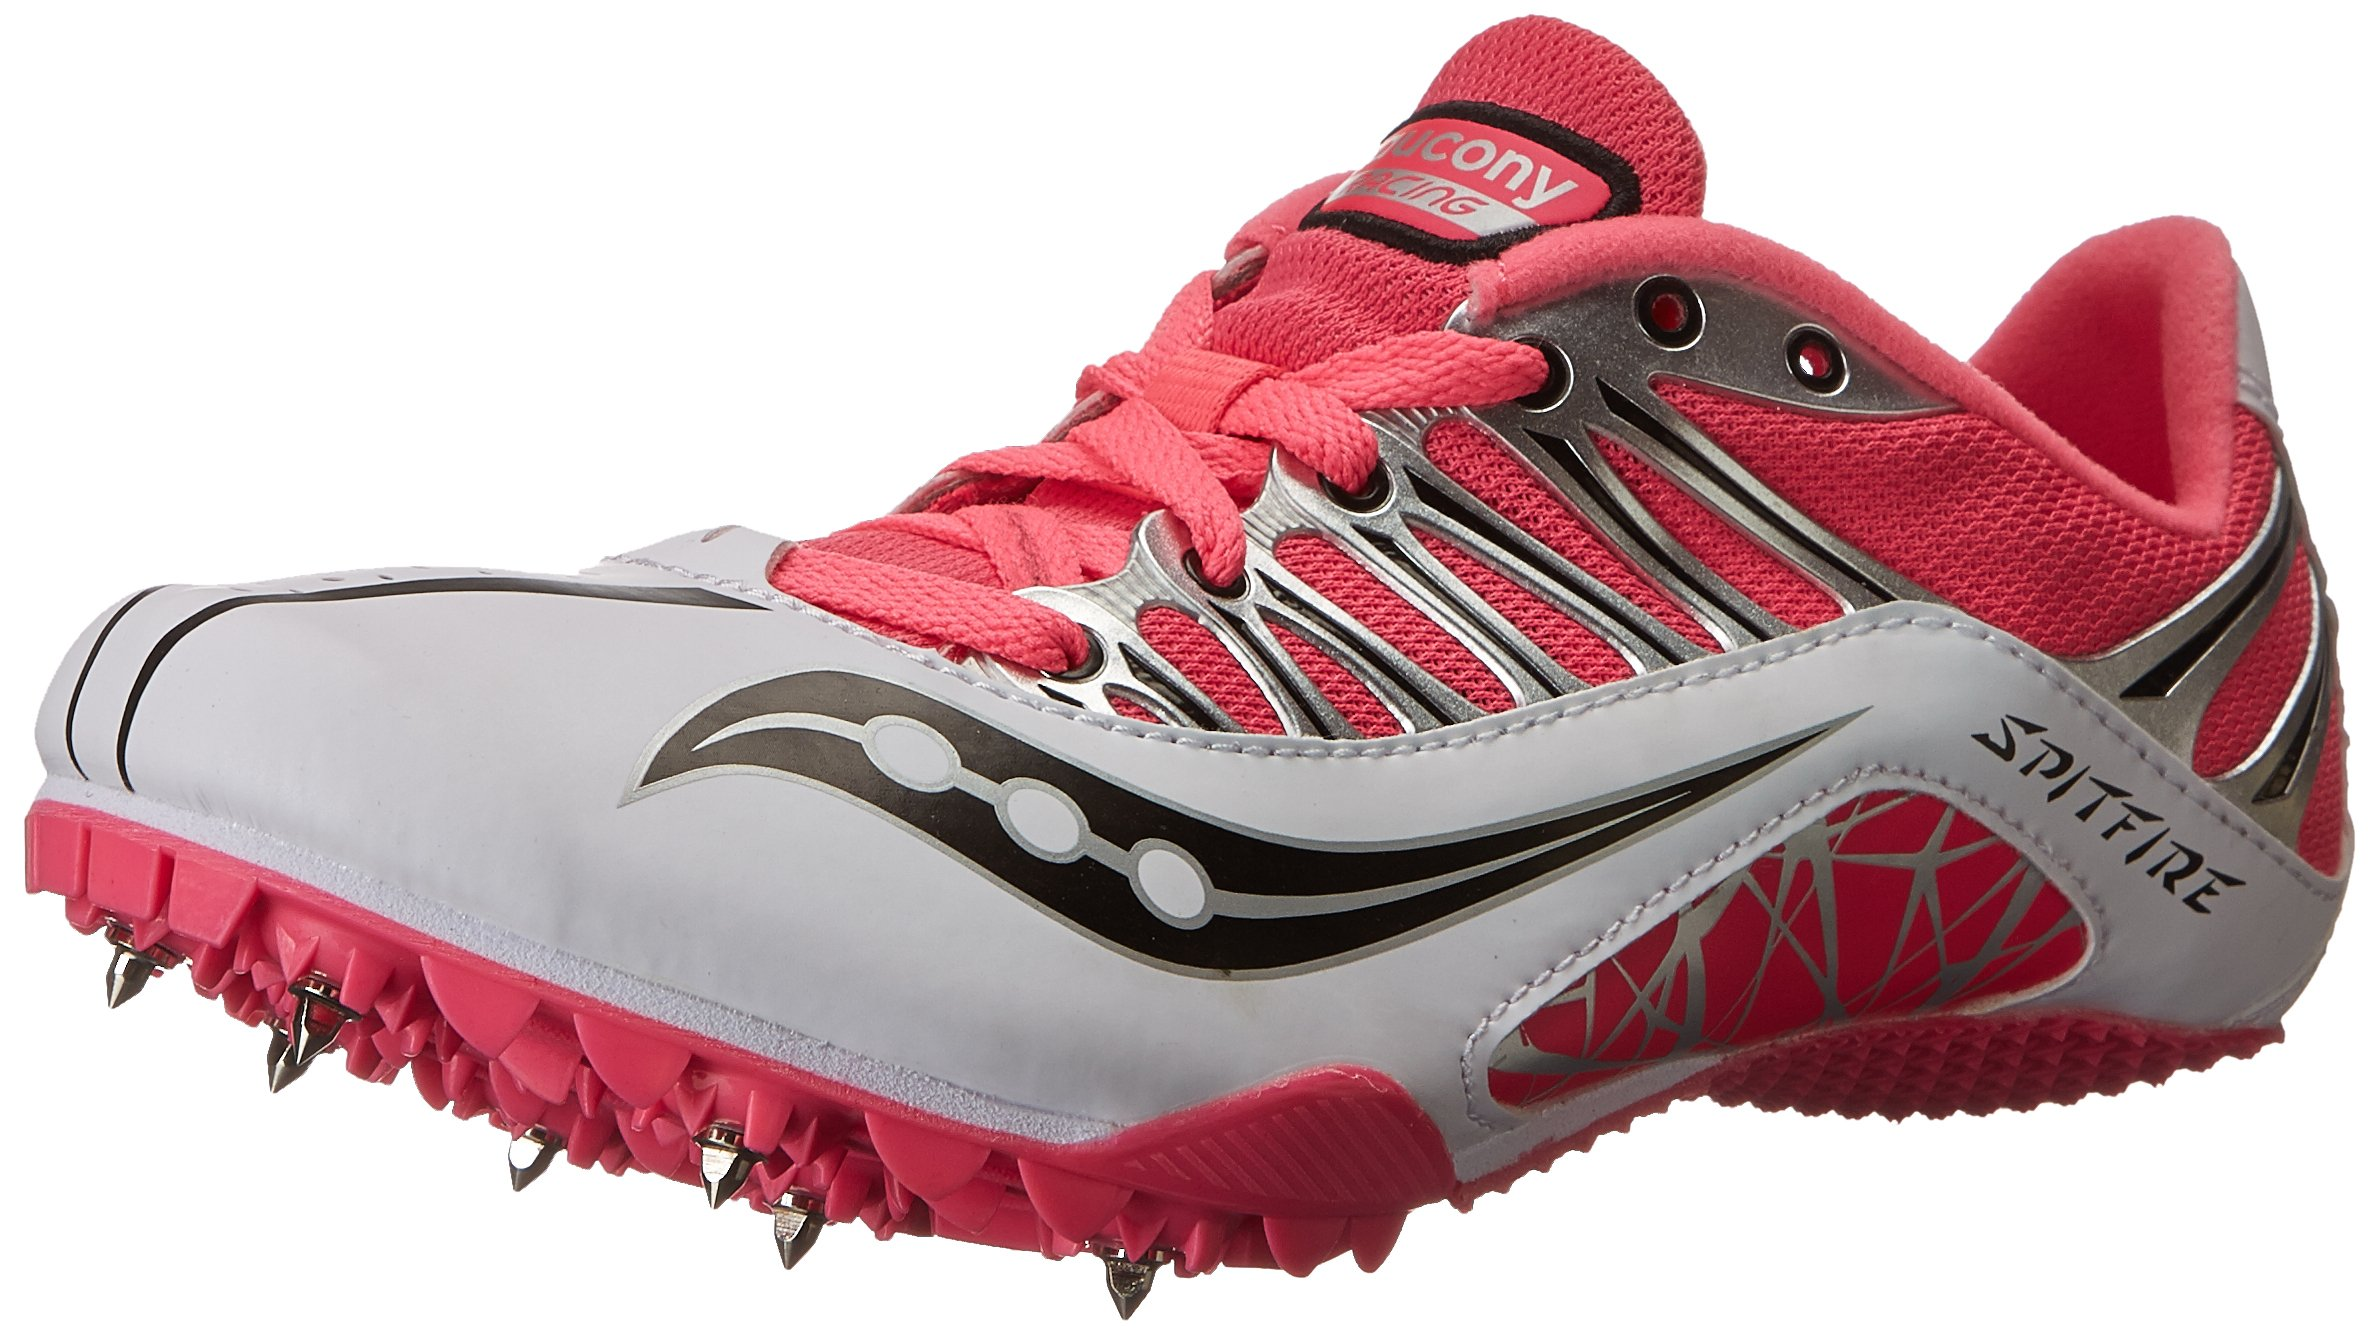 Saucony Women's Spitfire Track Spike Racing Shoe,White/Pink,6.5 M US